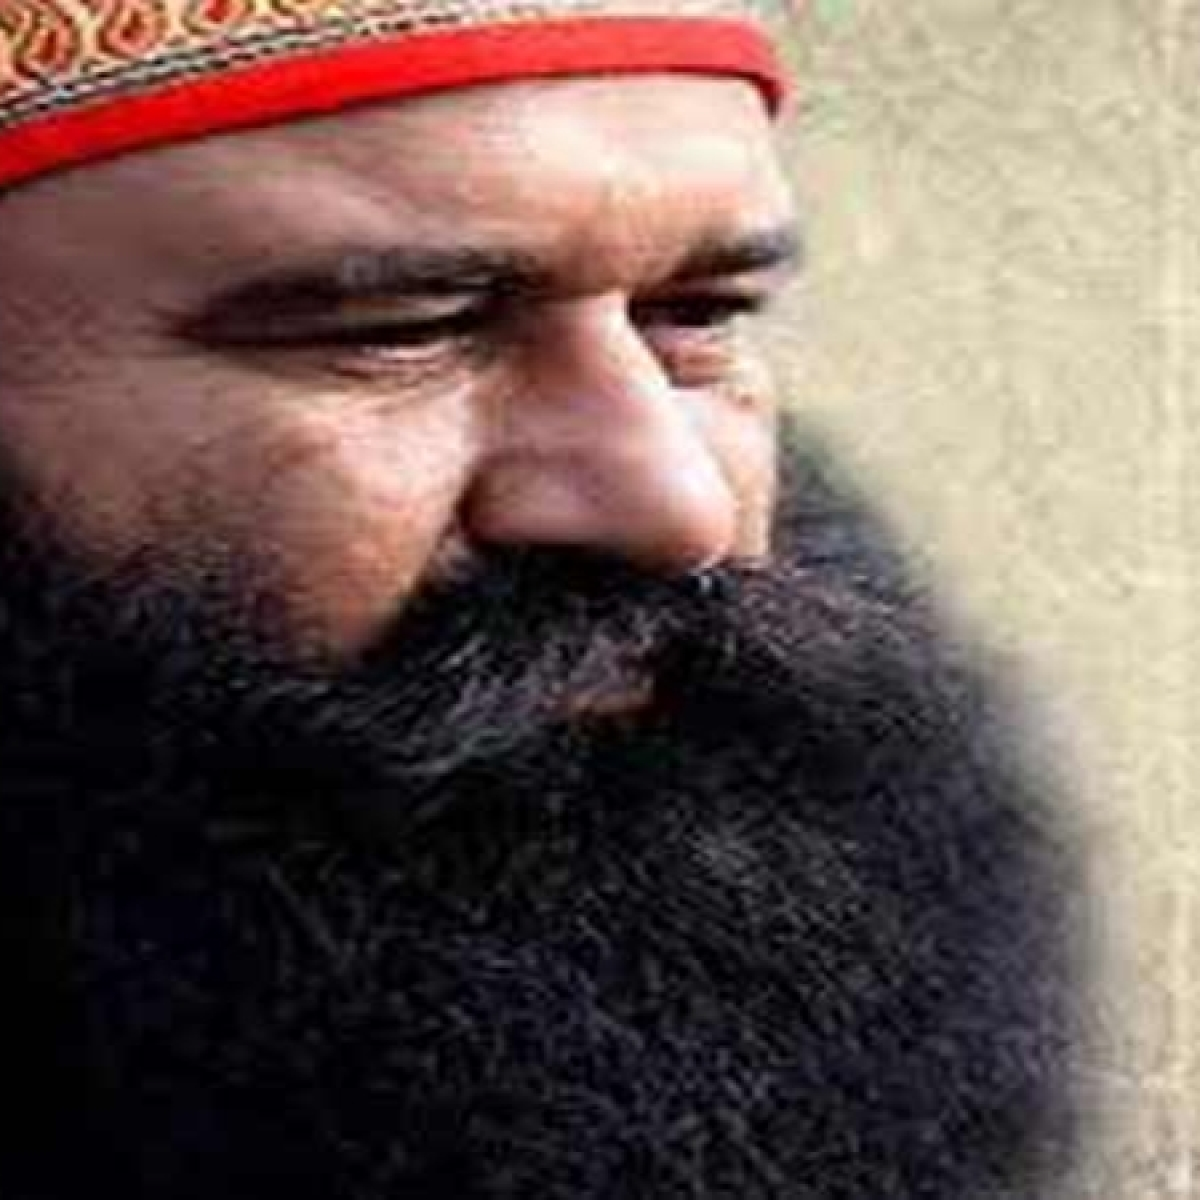 Theft of holy book: Dera Sacha Sauda chief, 3 others booked